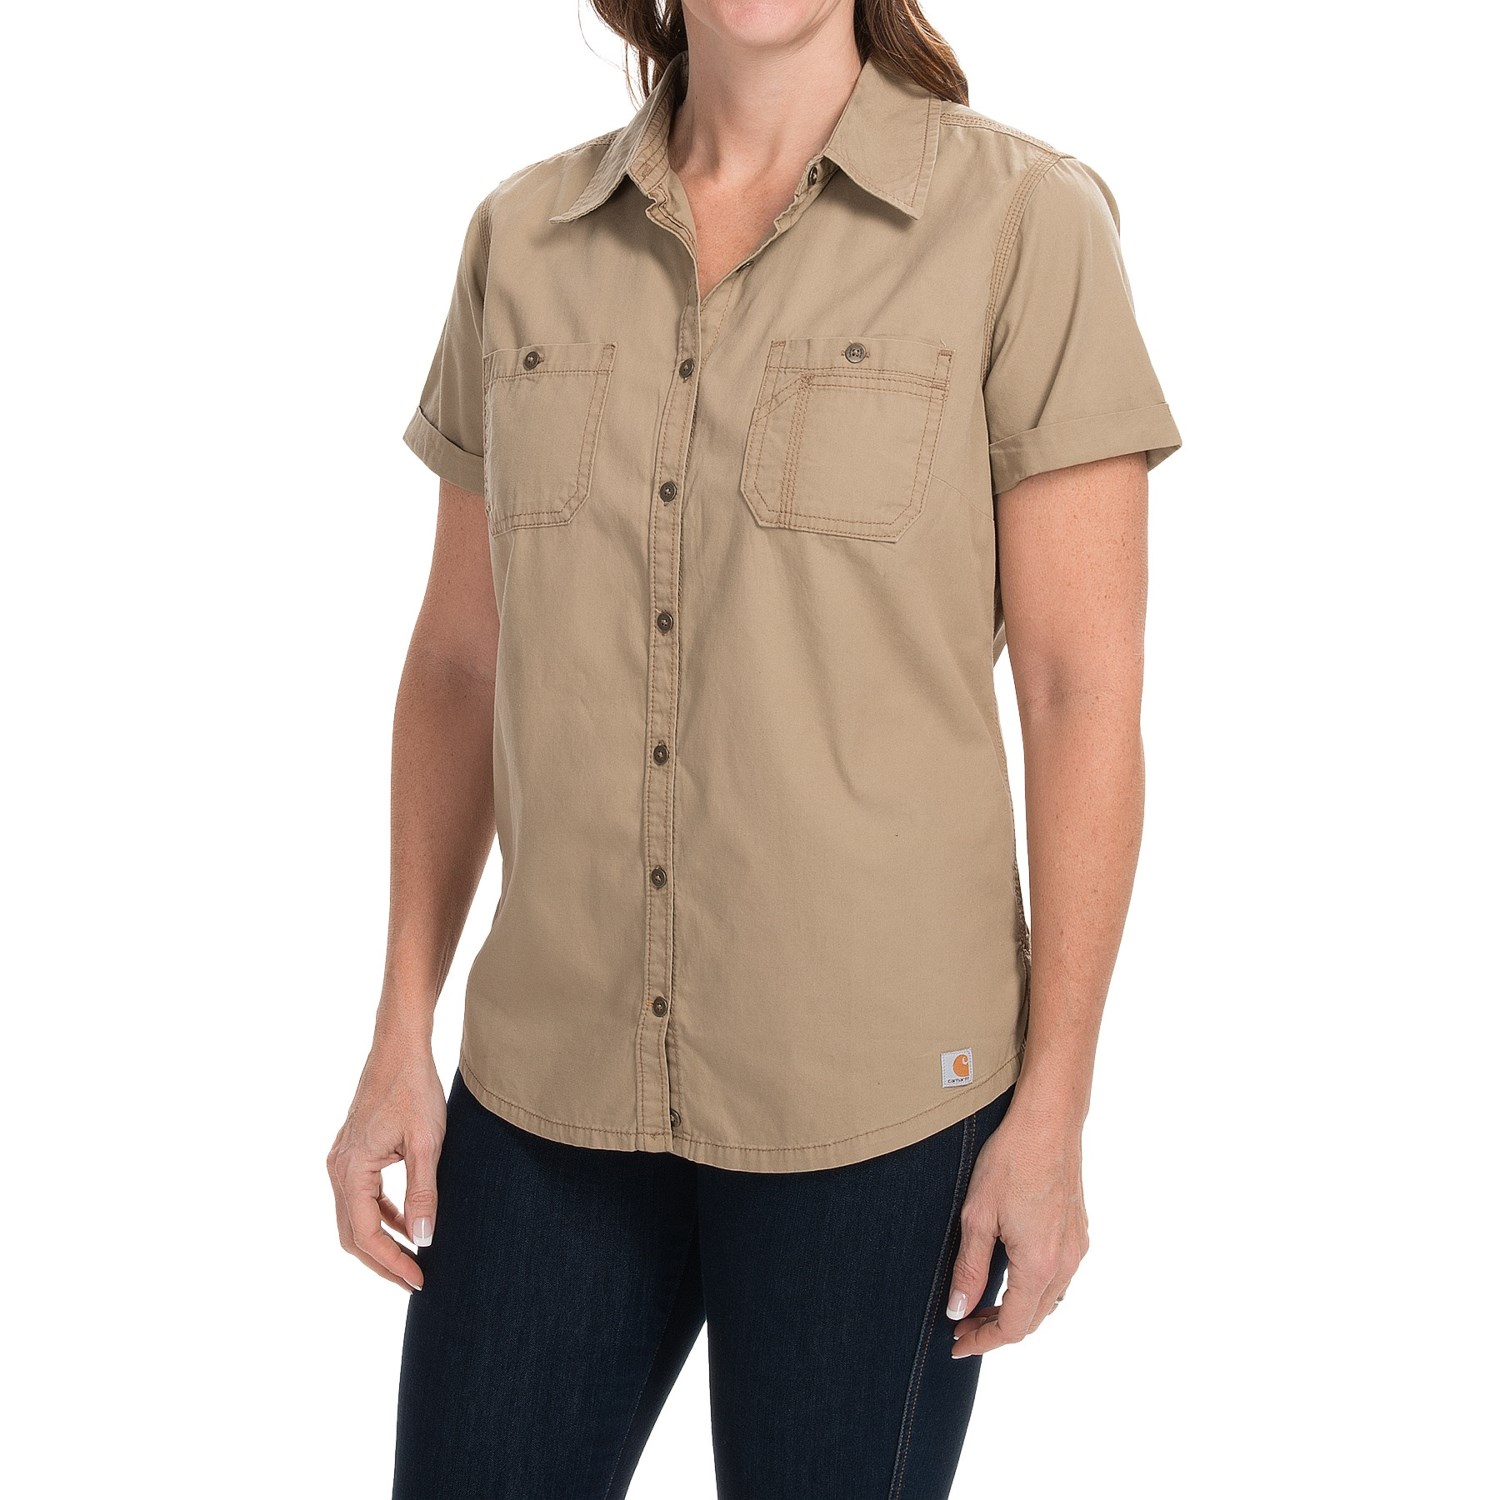 Work Shirts that are built tough to work as hard as you do day in and day out, yet with unsurpassed comfort makes these quality shirts, polos, and Tees the choice for the working professionals and hobbyists alike. These awesome looking shirts for men and women are the perfect choice for any occupation or uniform program.